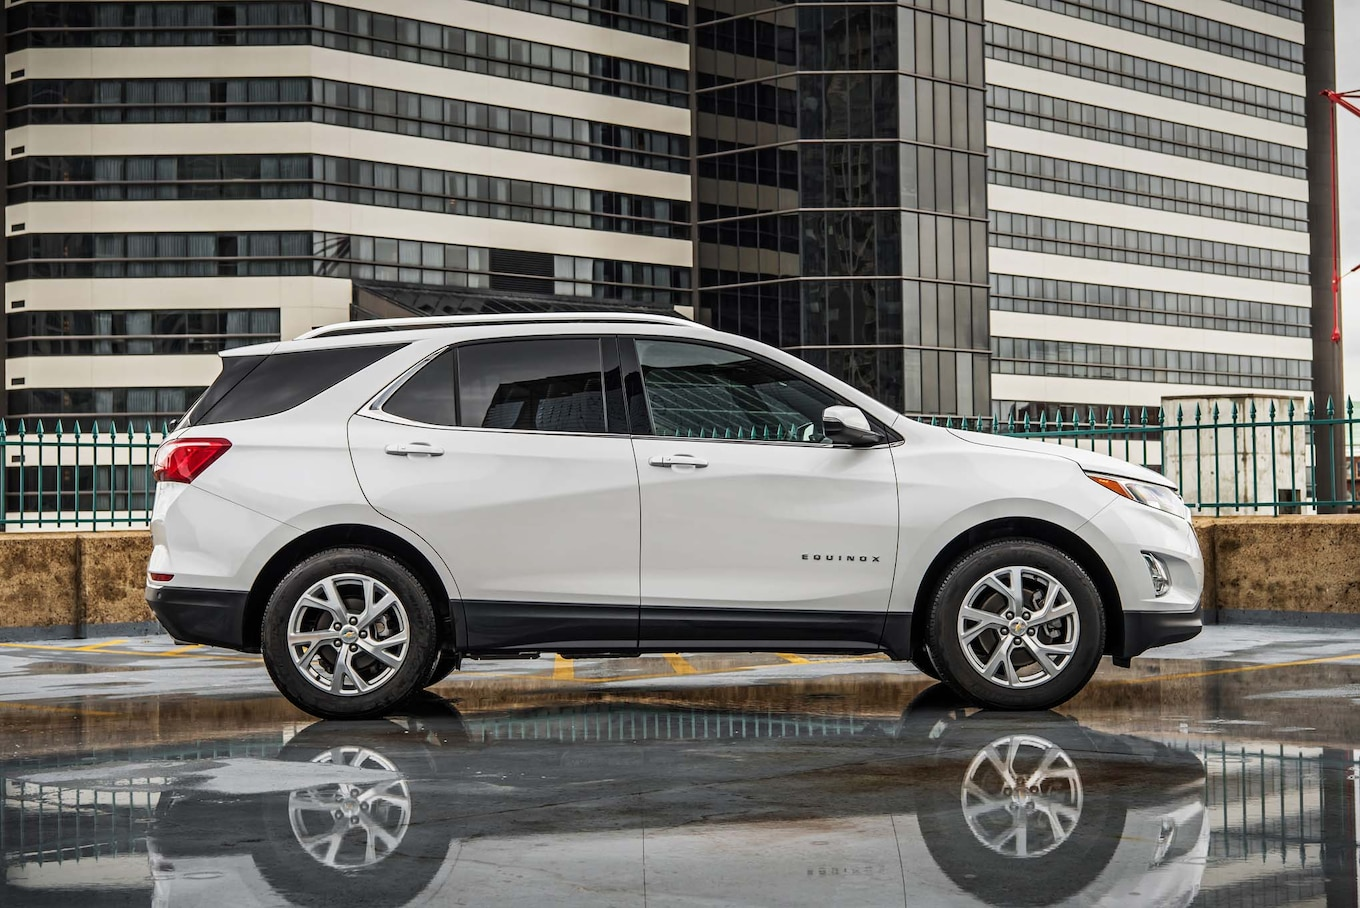 hight resolution of 1 20 2018 chevrolet equinox